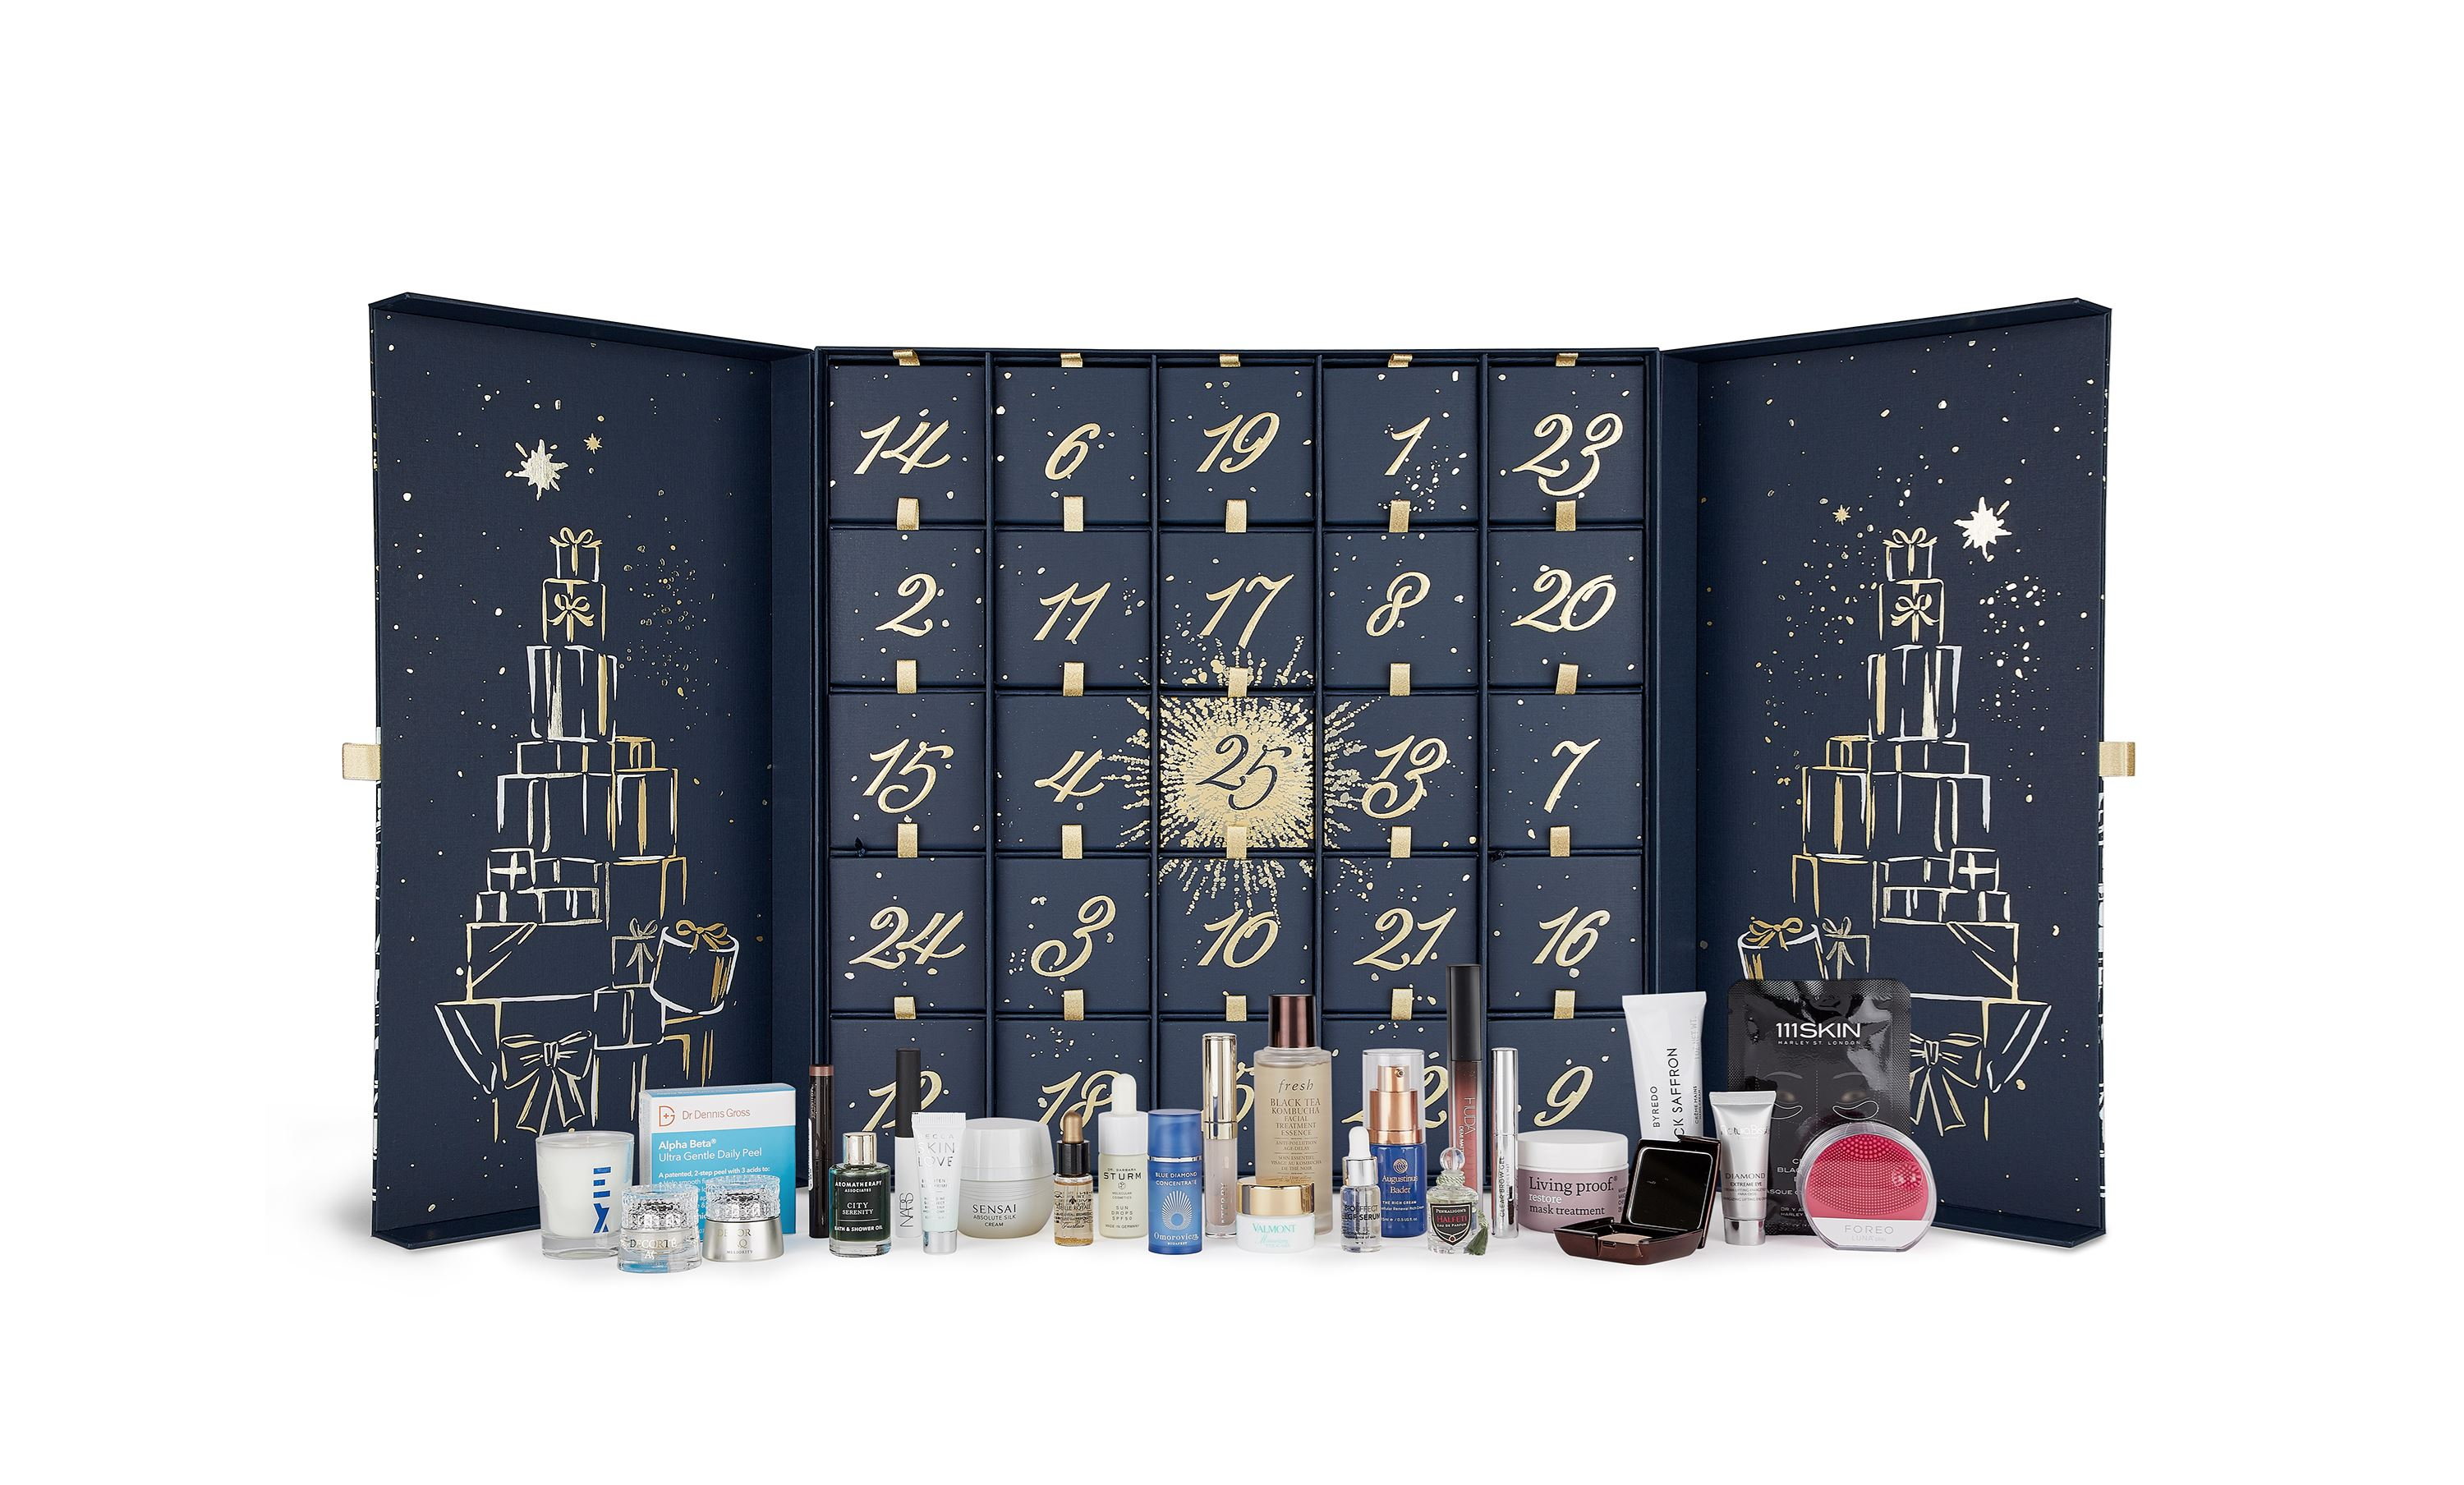 Beauty Advent Calendars 2019 That Are In Stock And Offer The